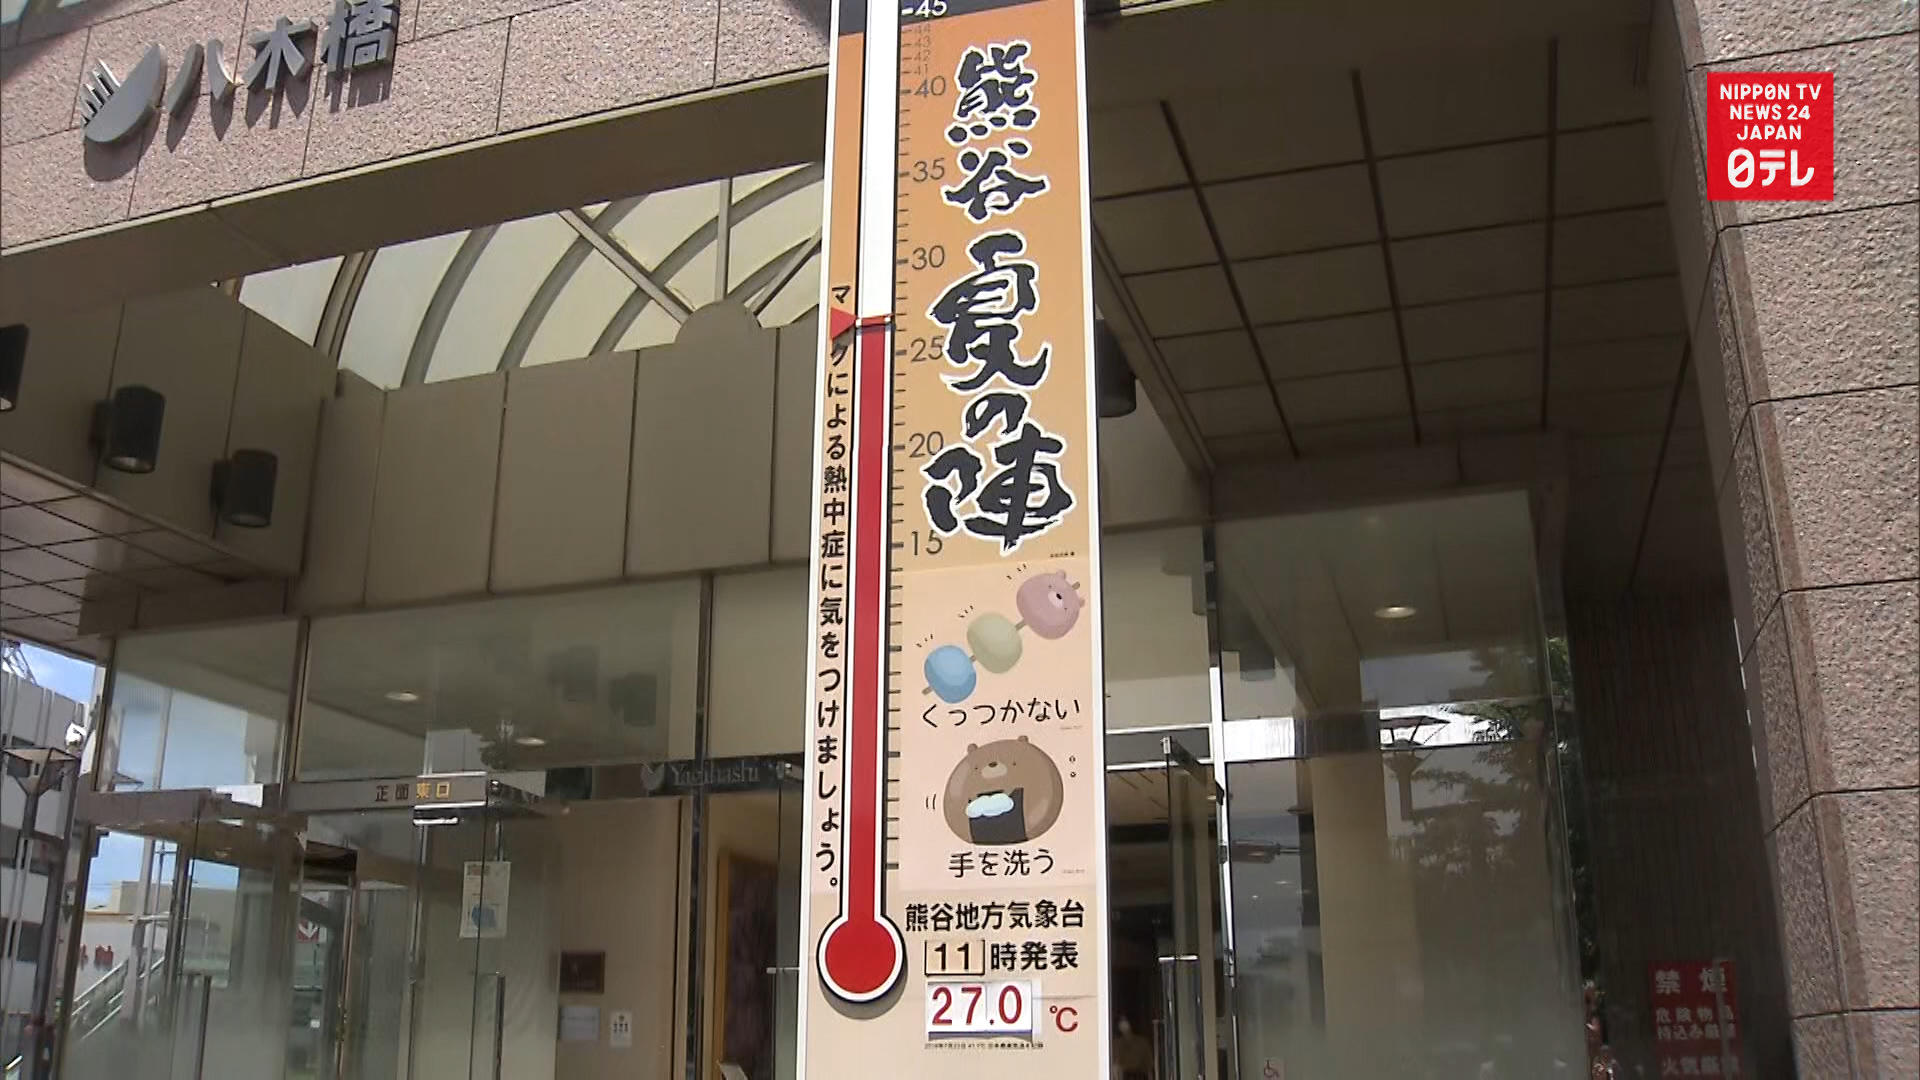 Thermometer sign in Japan's hottest city